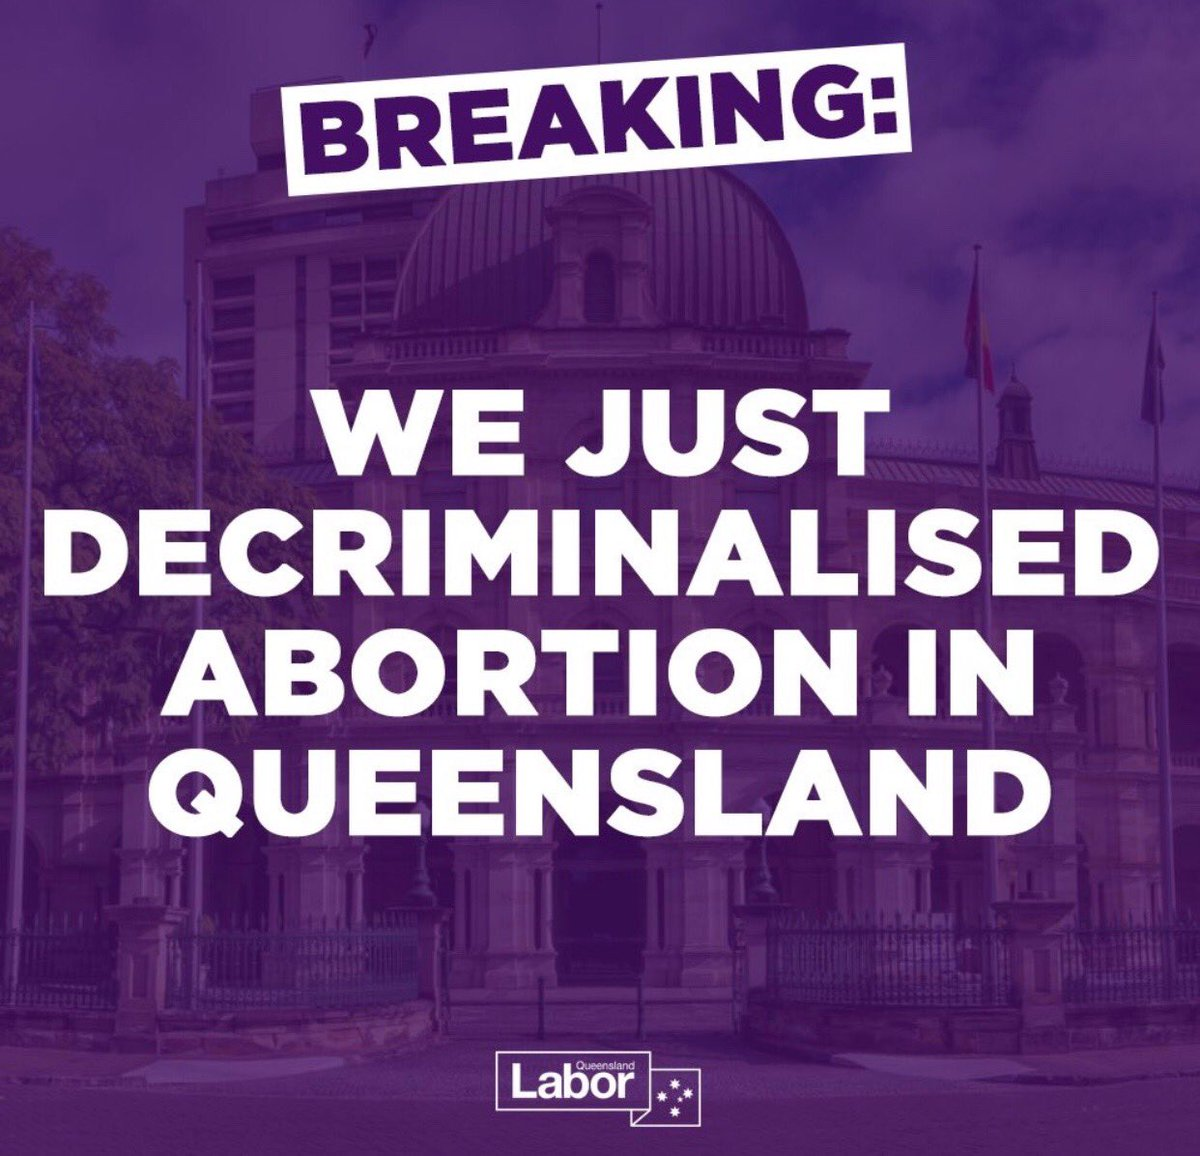 Queensland Becomes Latest Australian State to Decriminalize Abortion